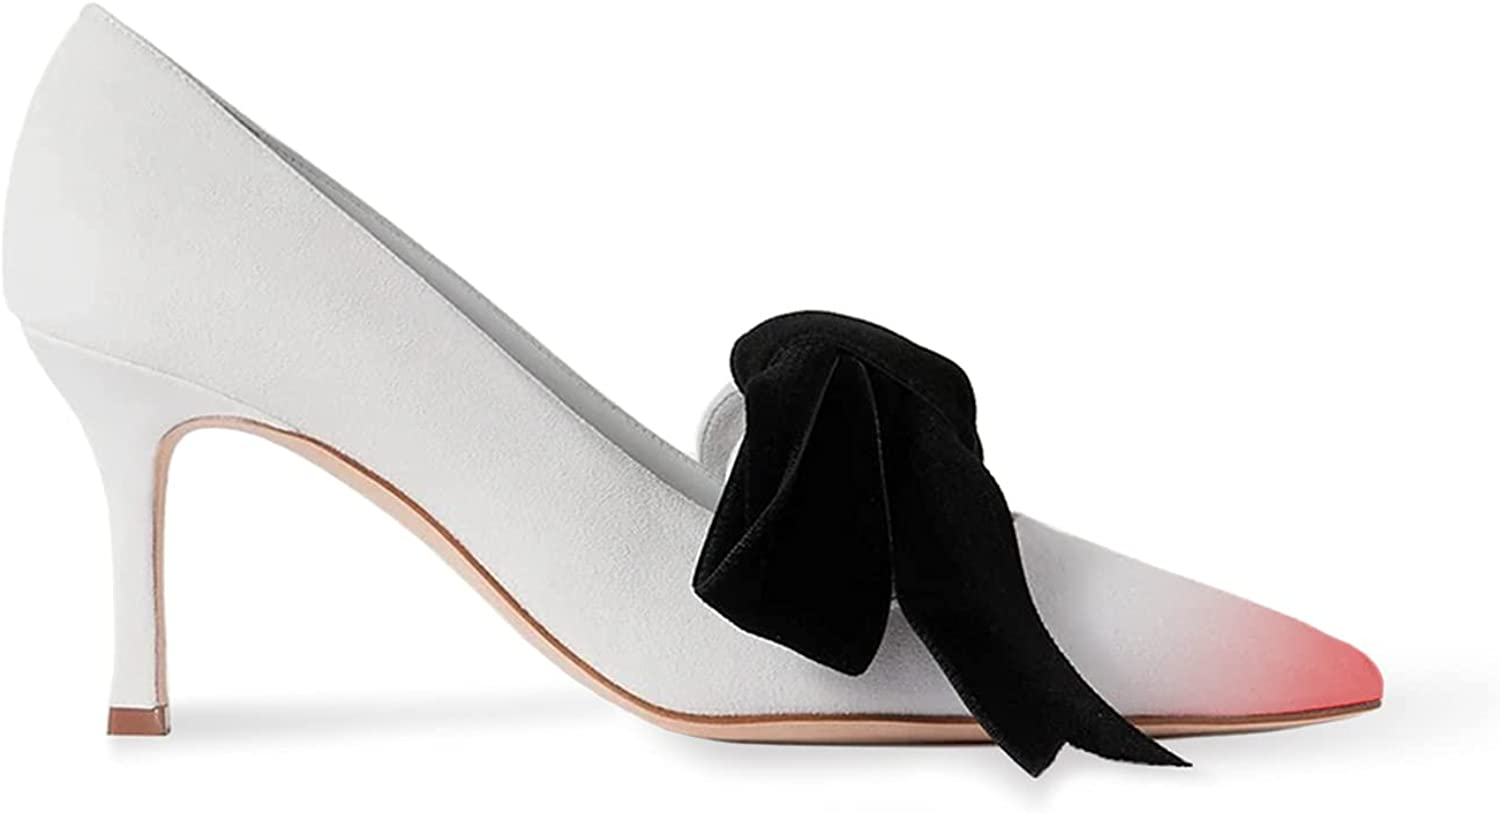 FOWTWomen's Big Super sale All items in the store period limited Black BowknotPumps Slip on Kitten He Thin High